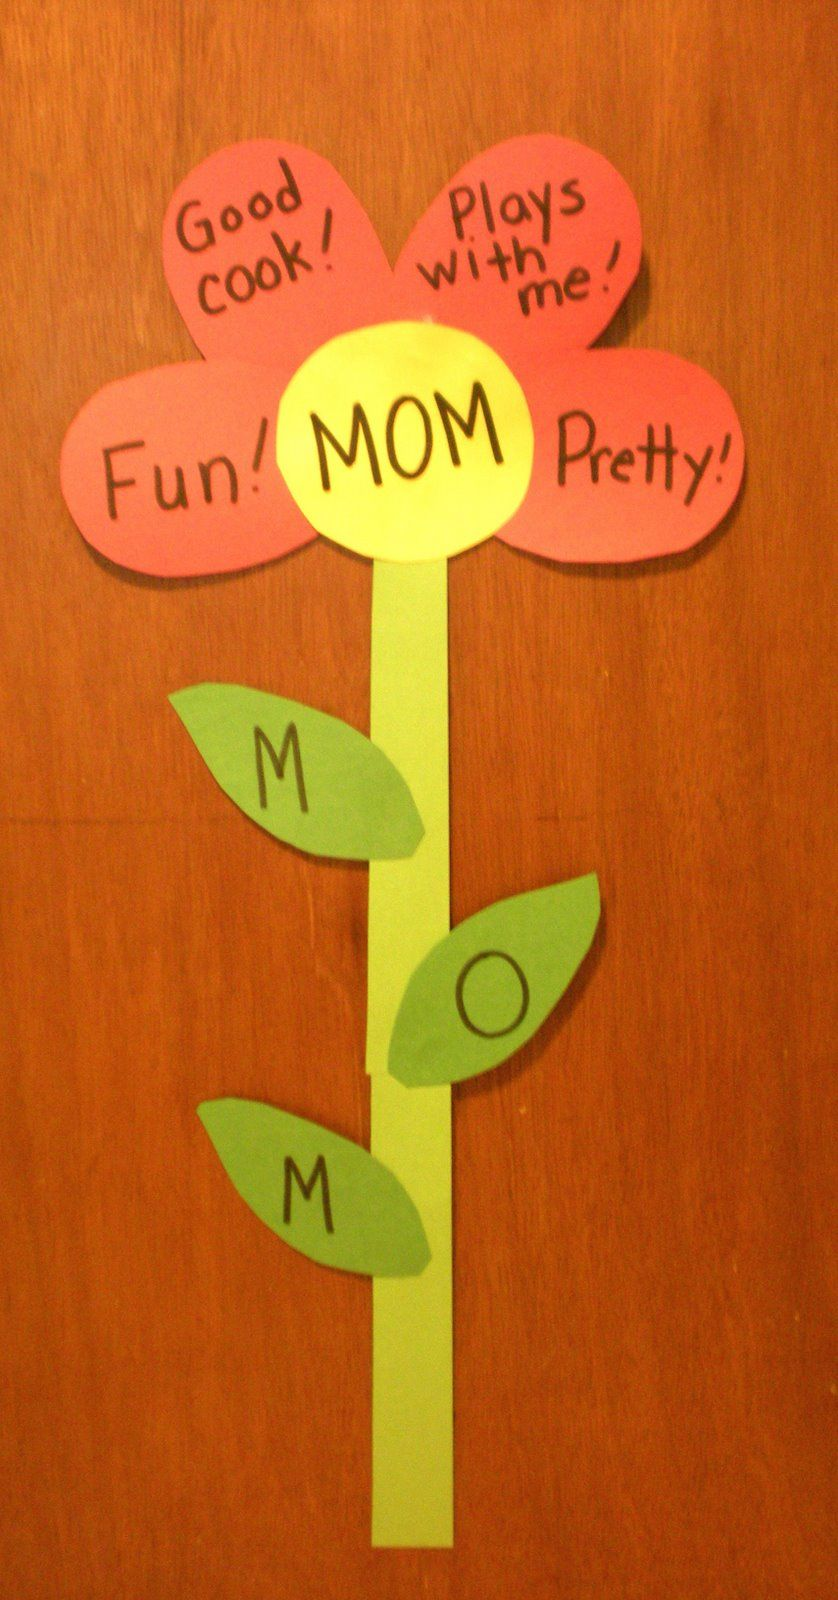 preschool playbook mother 39 s day writing mothers day crafts mother 39 s day activities mother. Black Bedroom Furniture Sets. Home Design Ideas